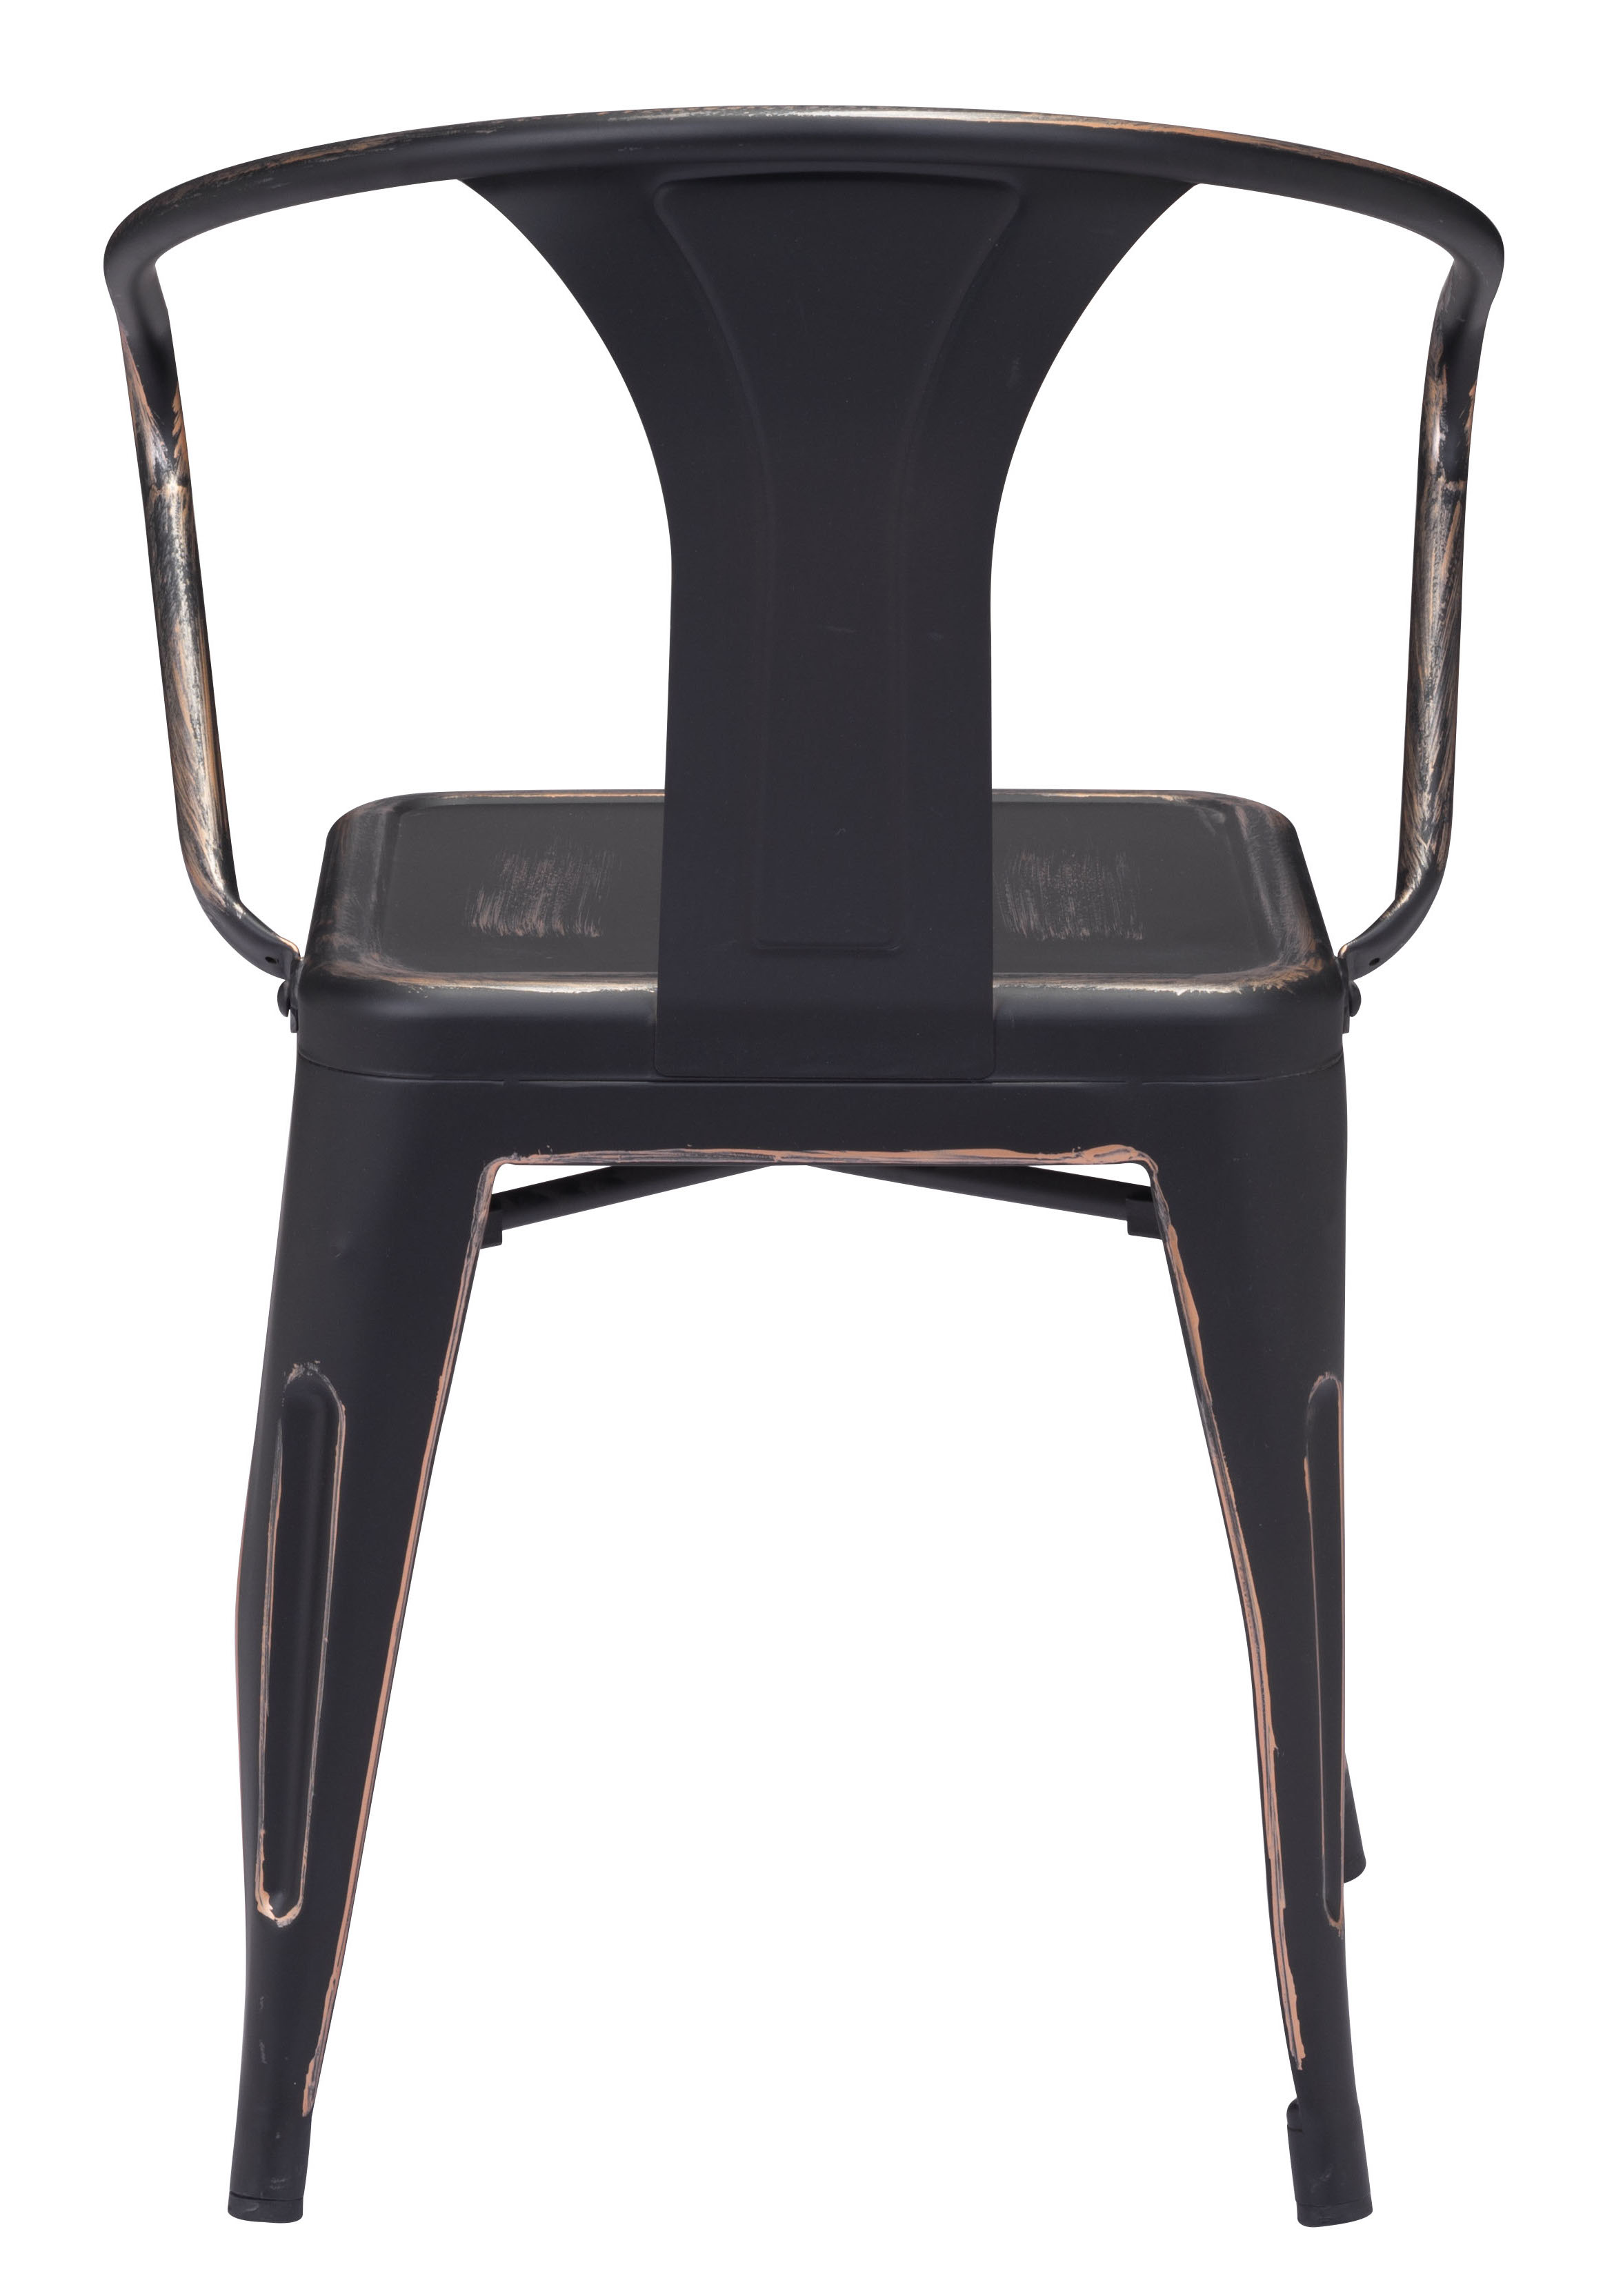 antique dining chairs value cheap chair covers and sashes helix black gold industrial style